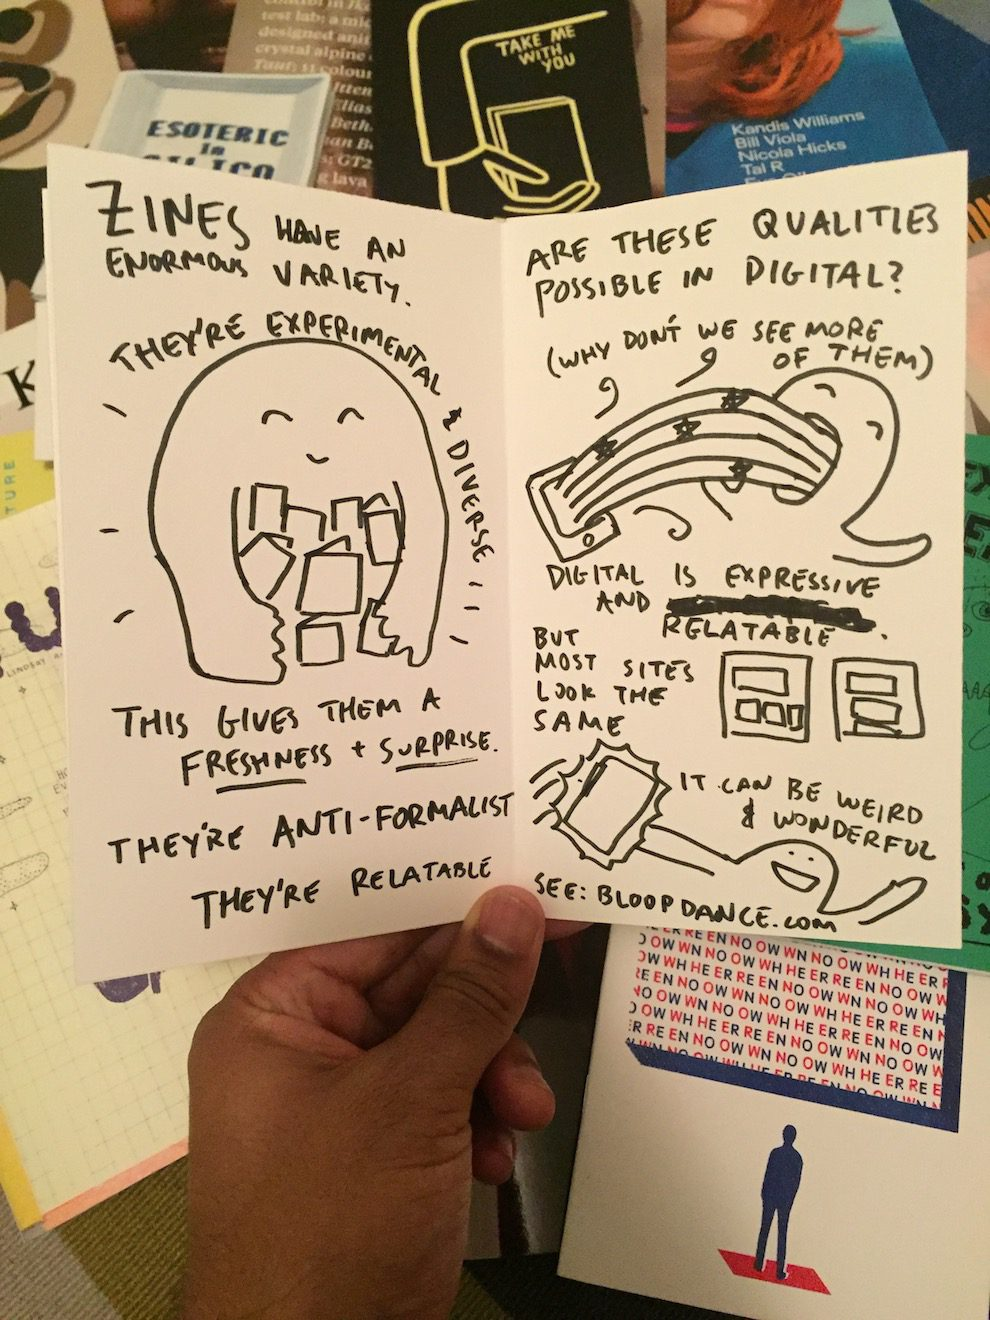 Zines are the future of media